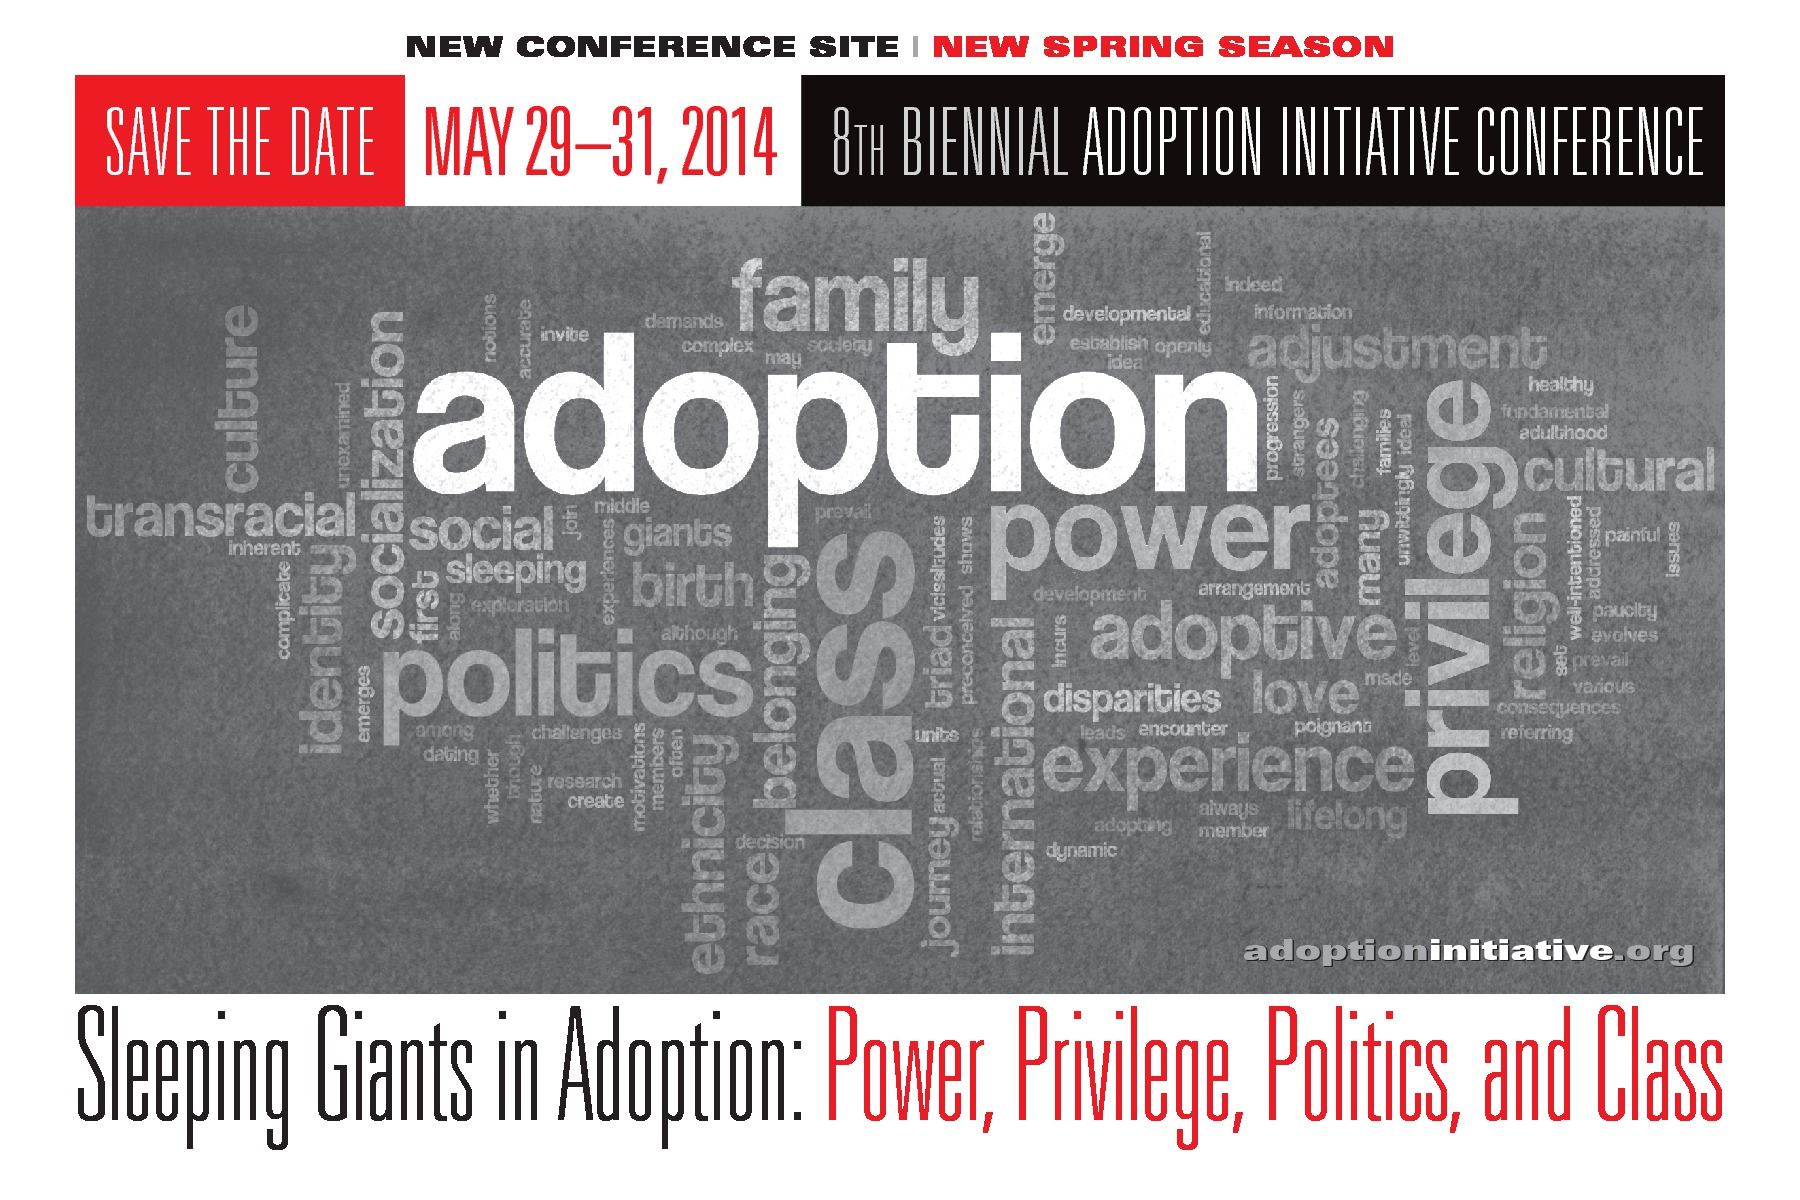 NY adoption conference